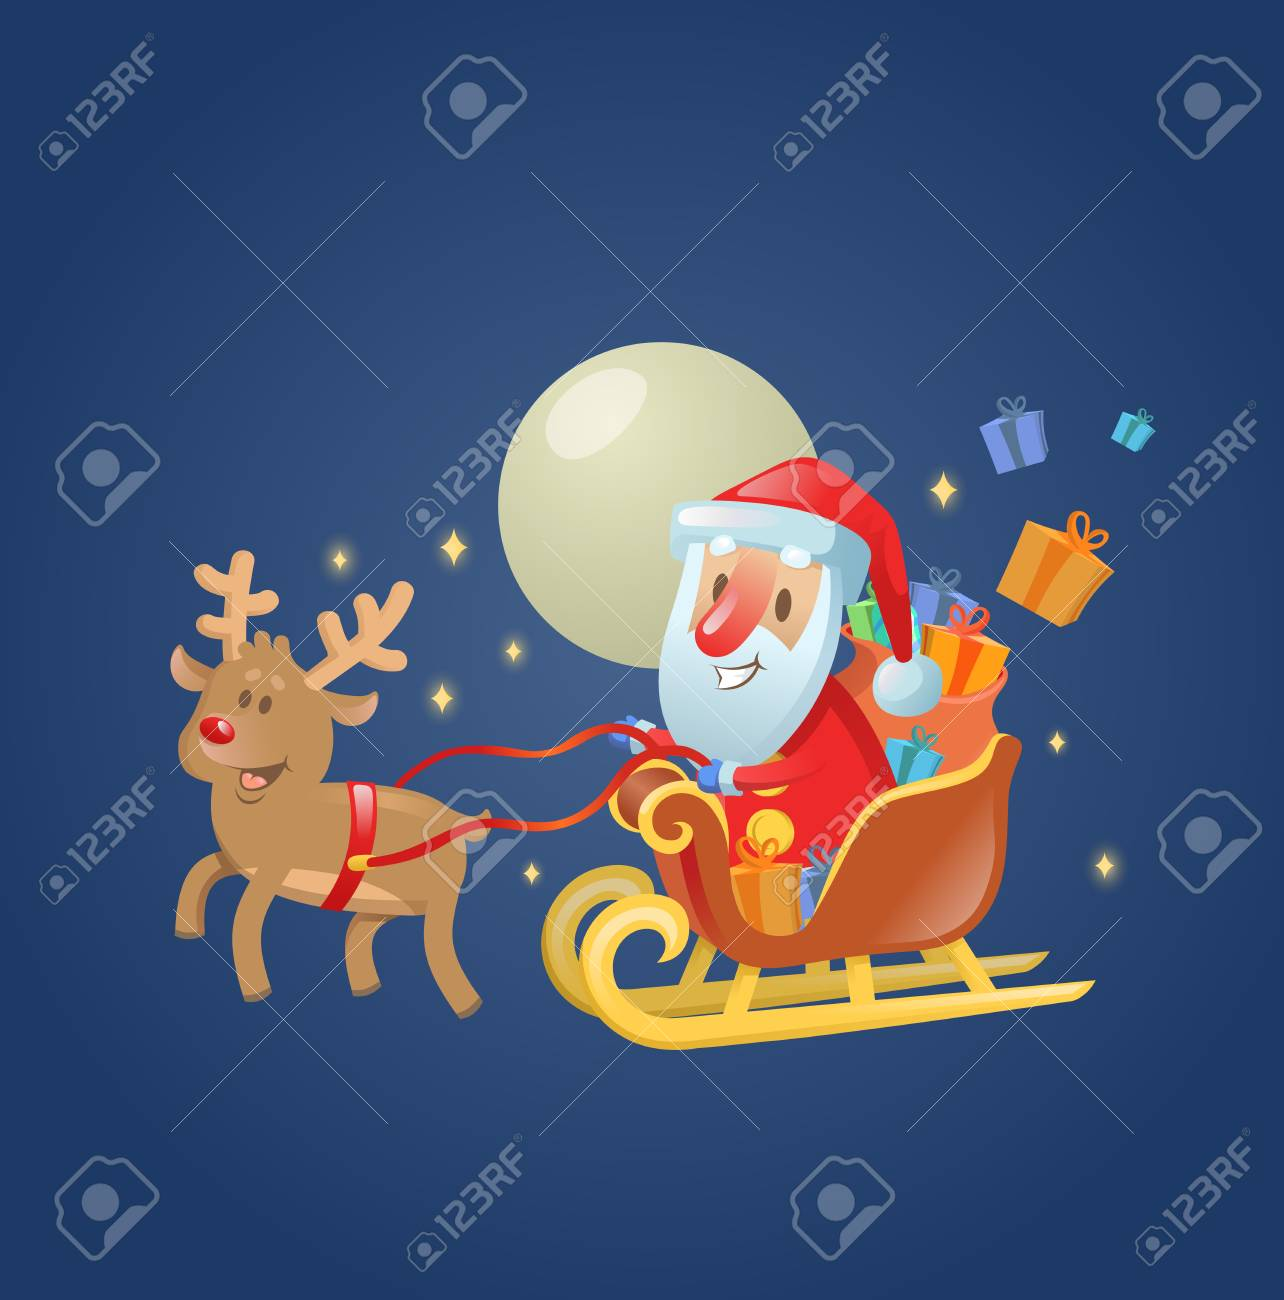 santa claus in his christmas sled sleigh with his reindeer across